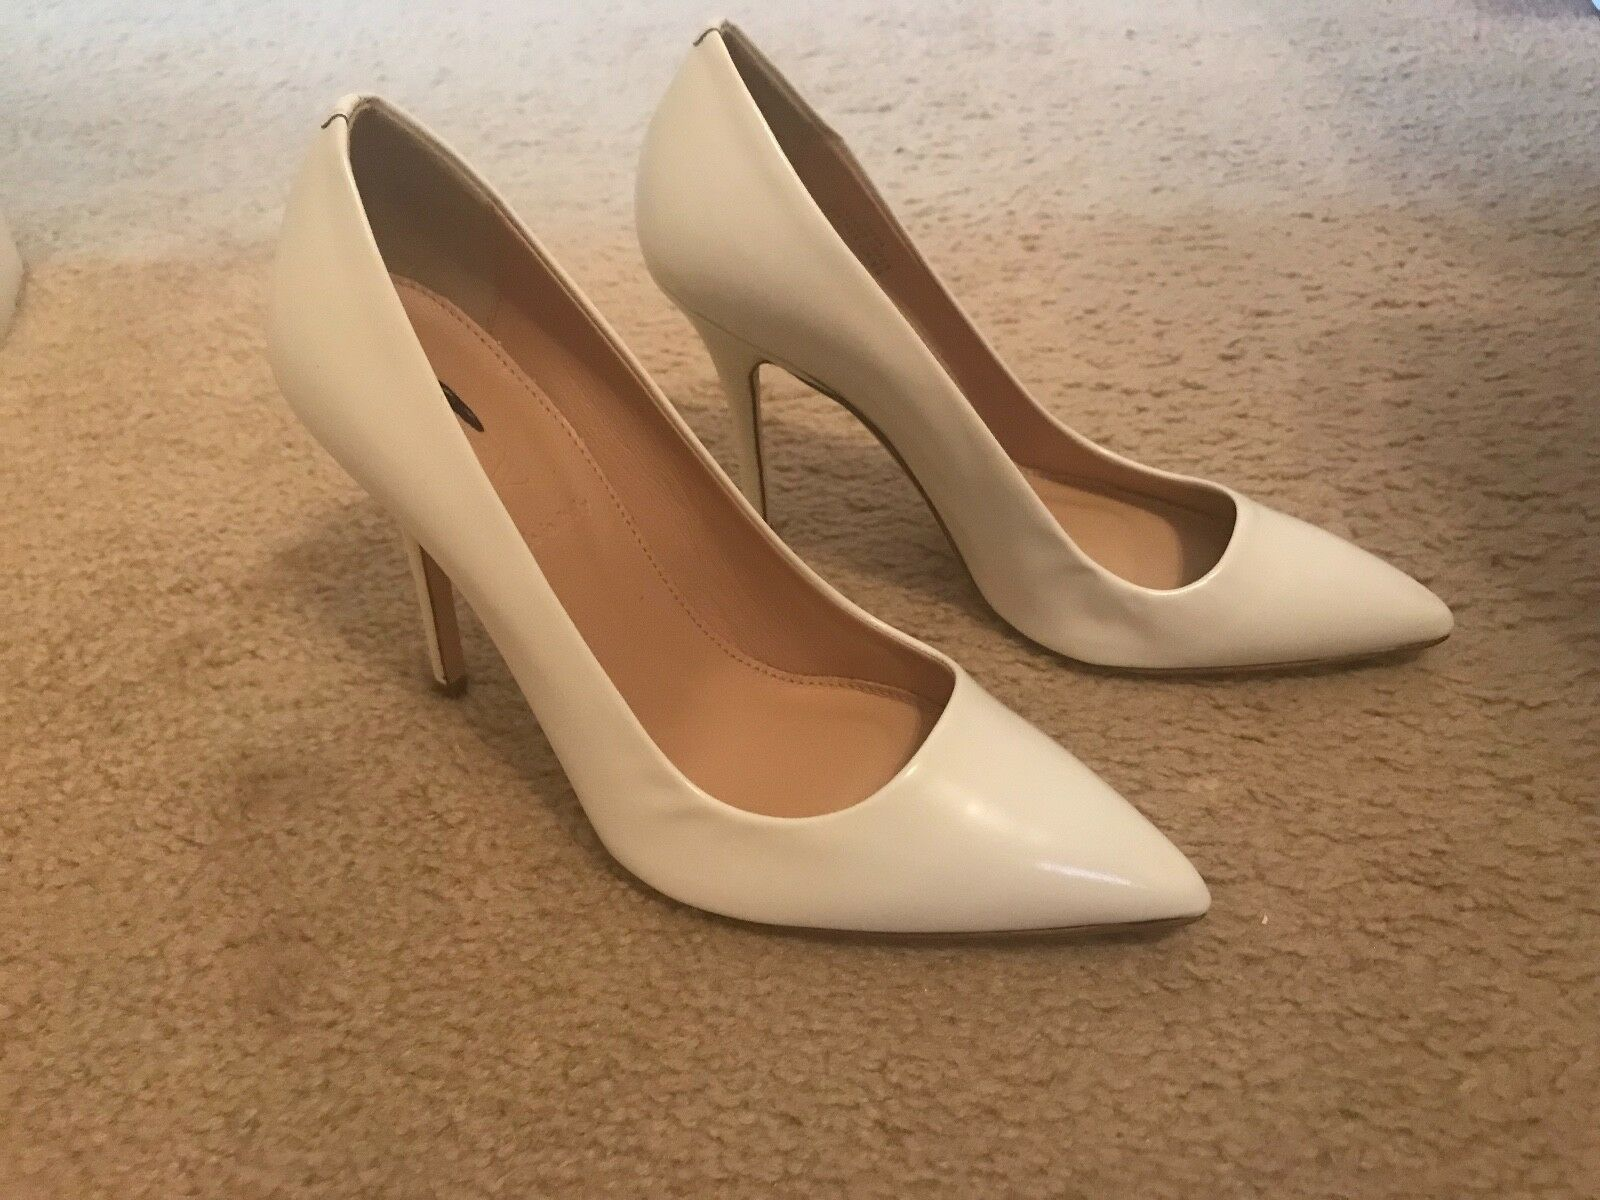 J.CREW ROXIE GLOSSY LEATHER PUMPS SIZE 6M WEISS B4124